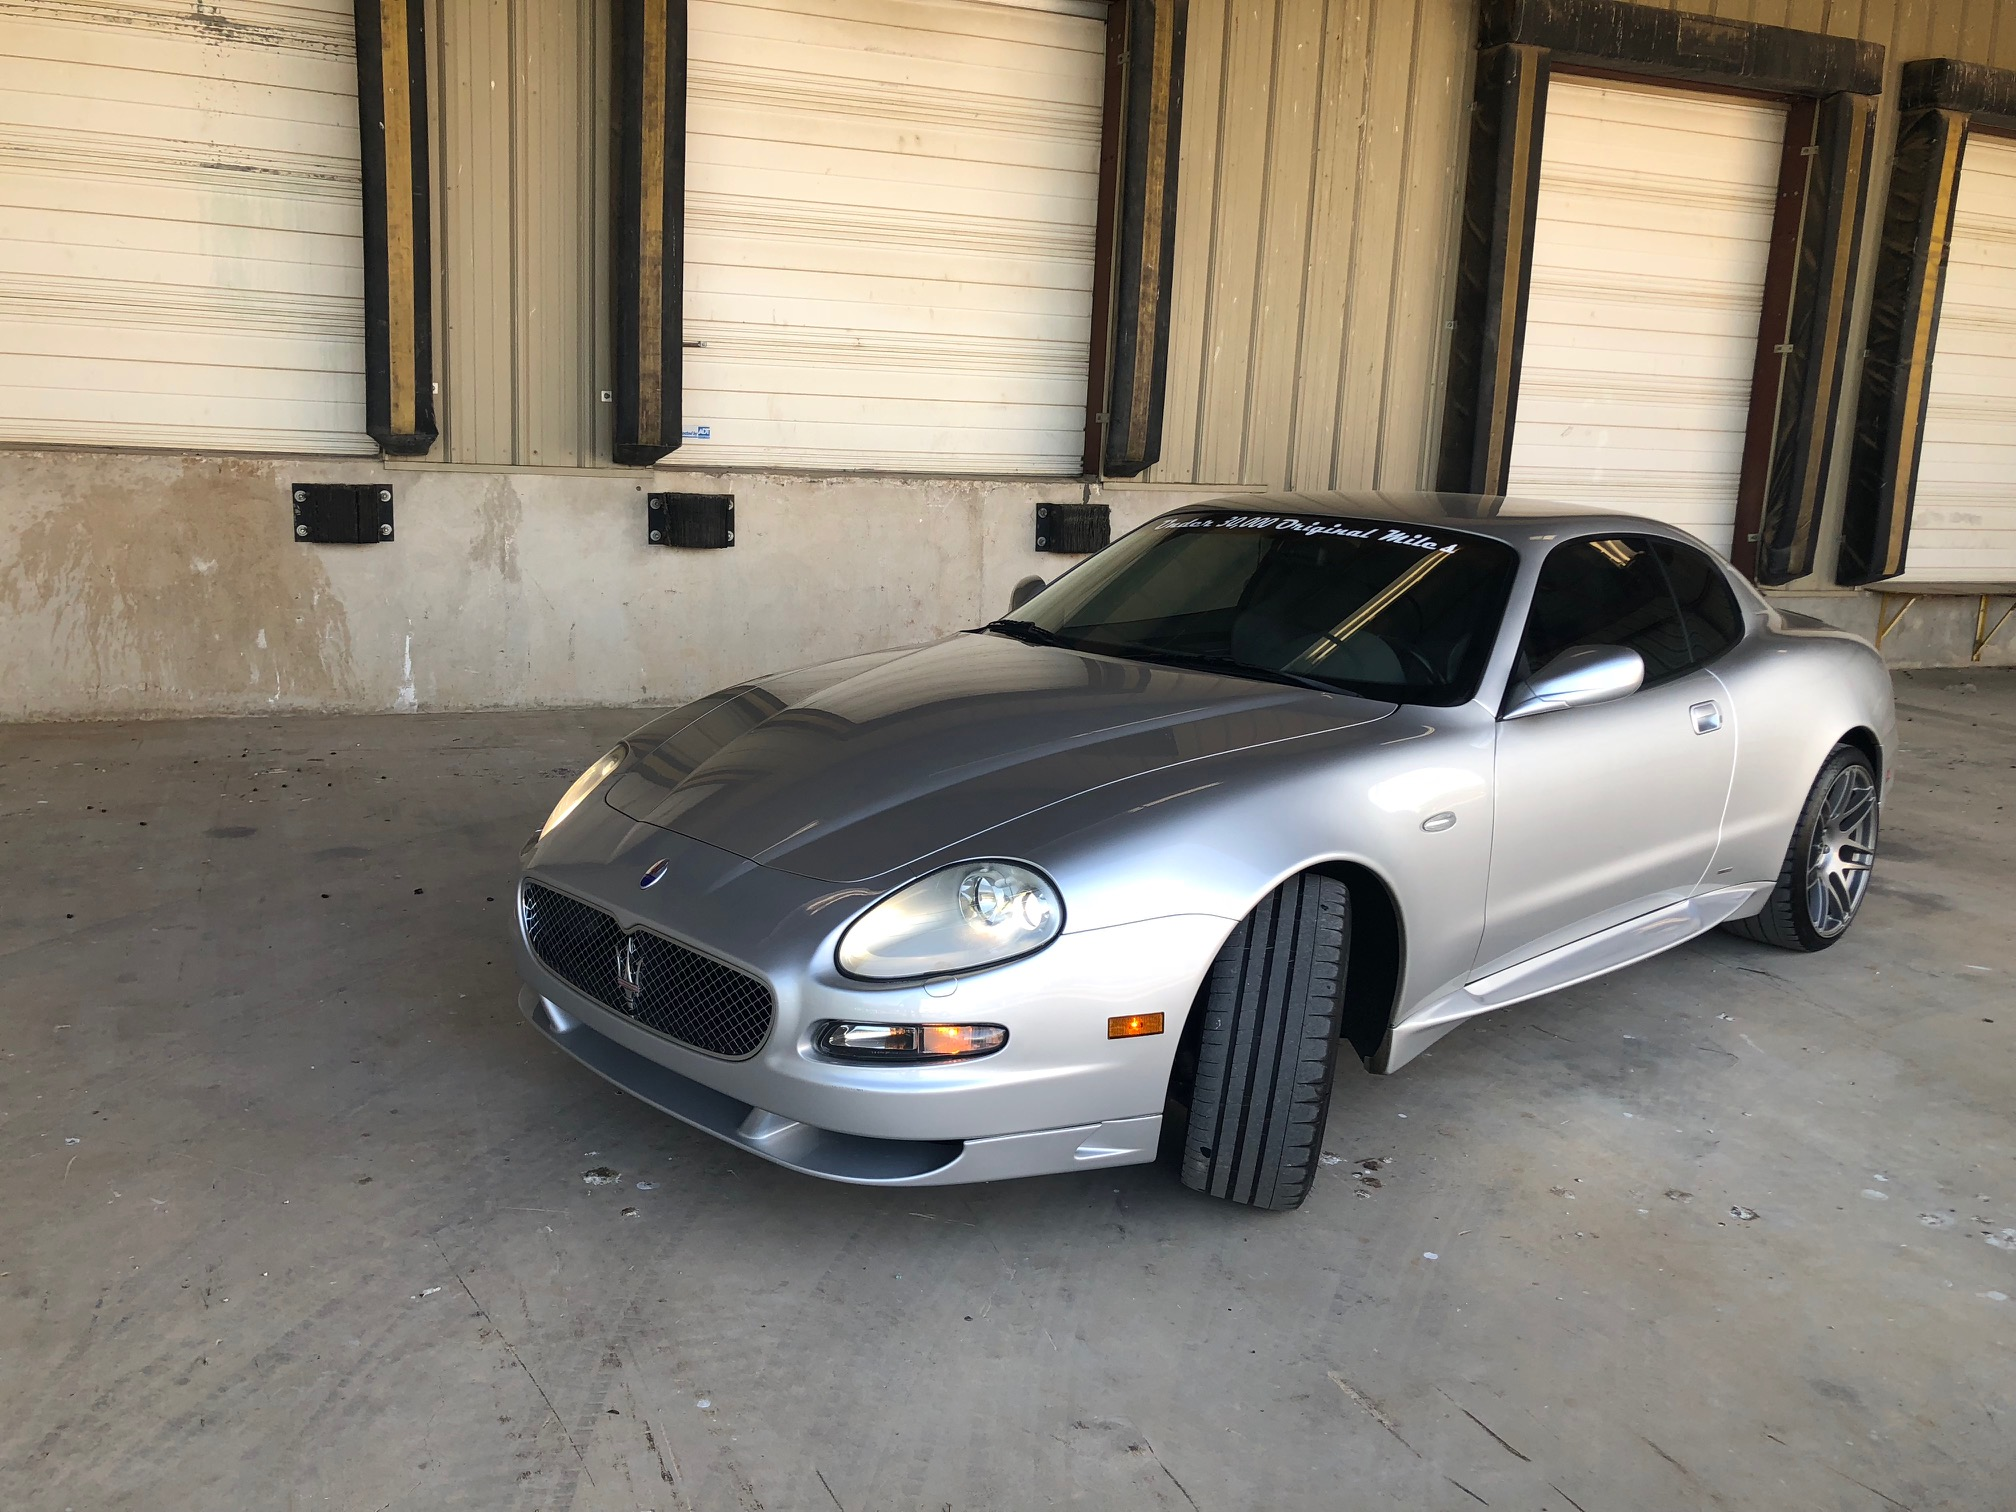 2005 maserati grand sport for sale at vicari auctions nocona tx 2018. Black Bedroom Furniture Sets. Home Design Ideas